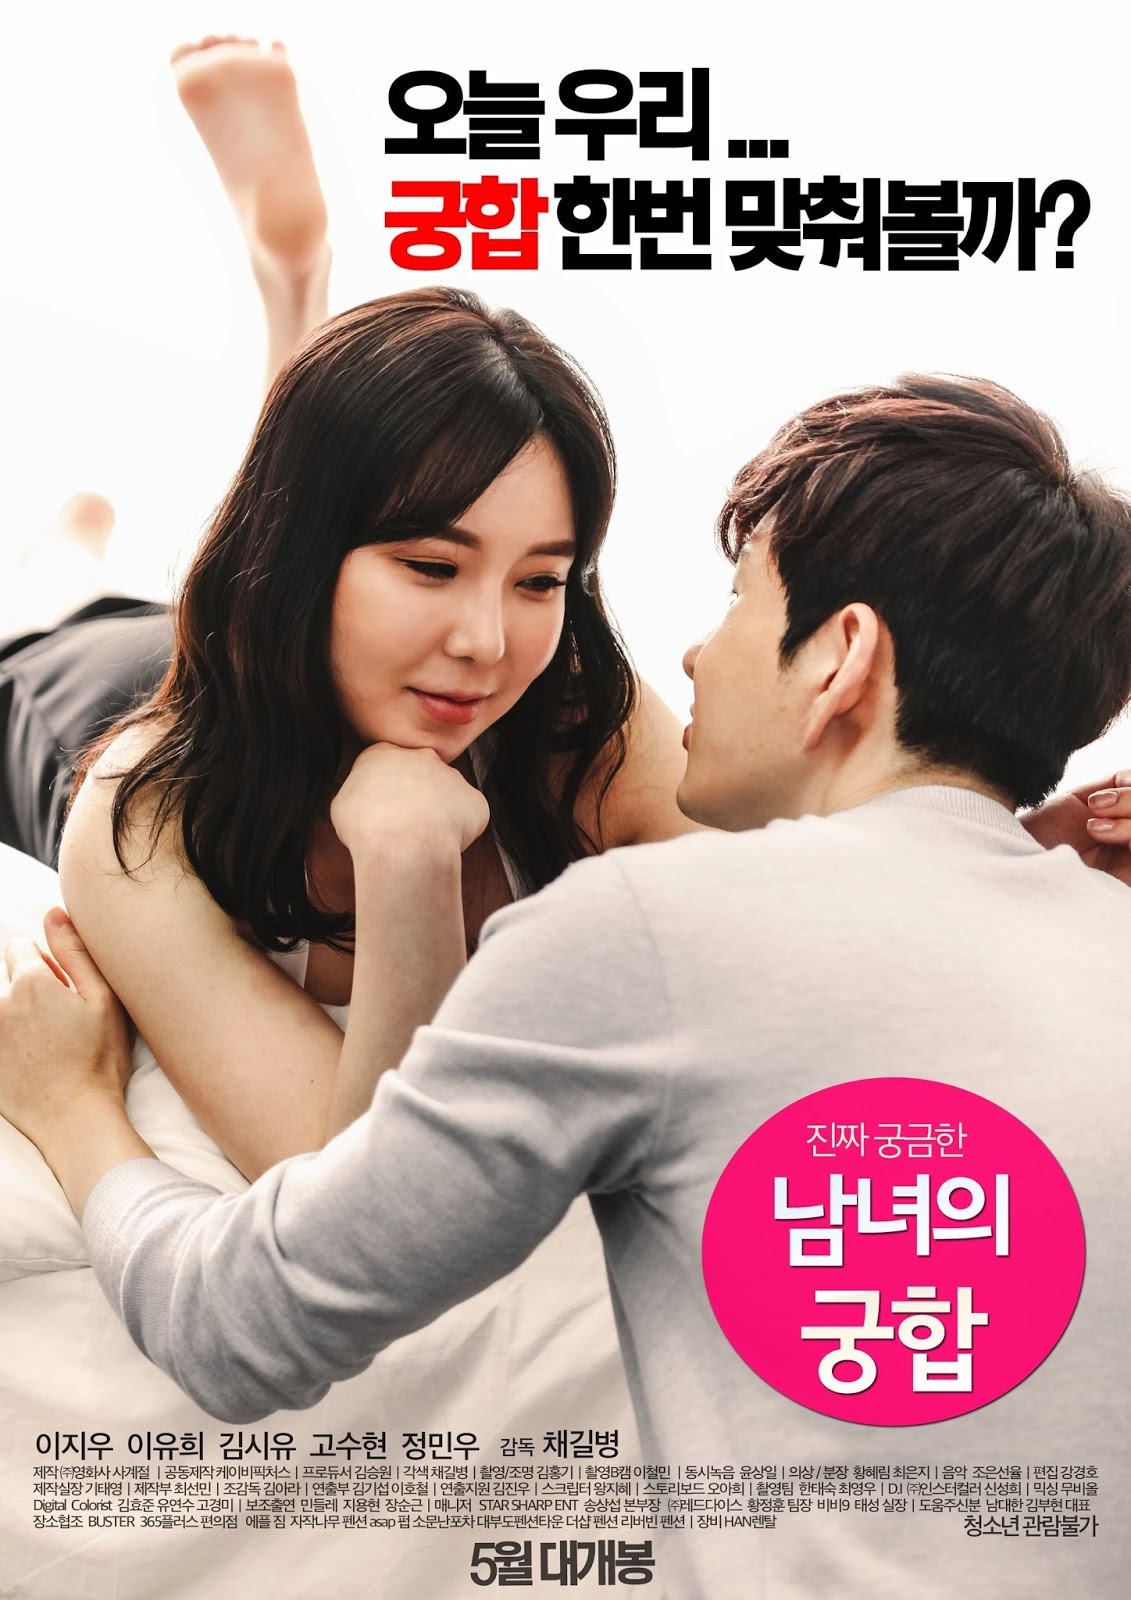 Marital Harmony of Man and Woman (2016) 720p HDRip Cepet.in